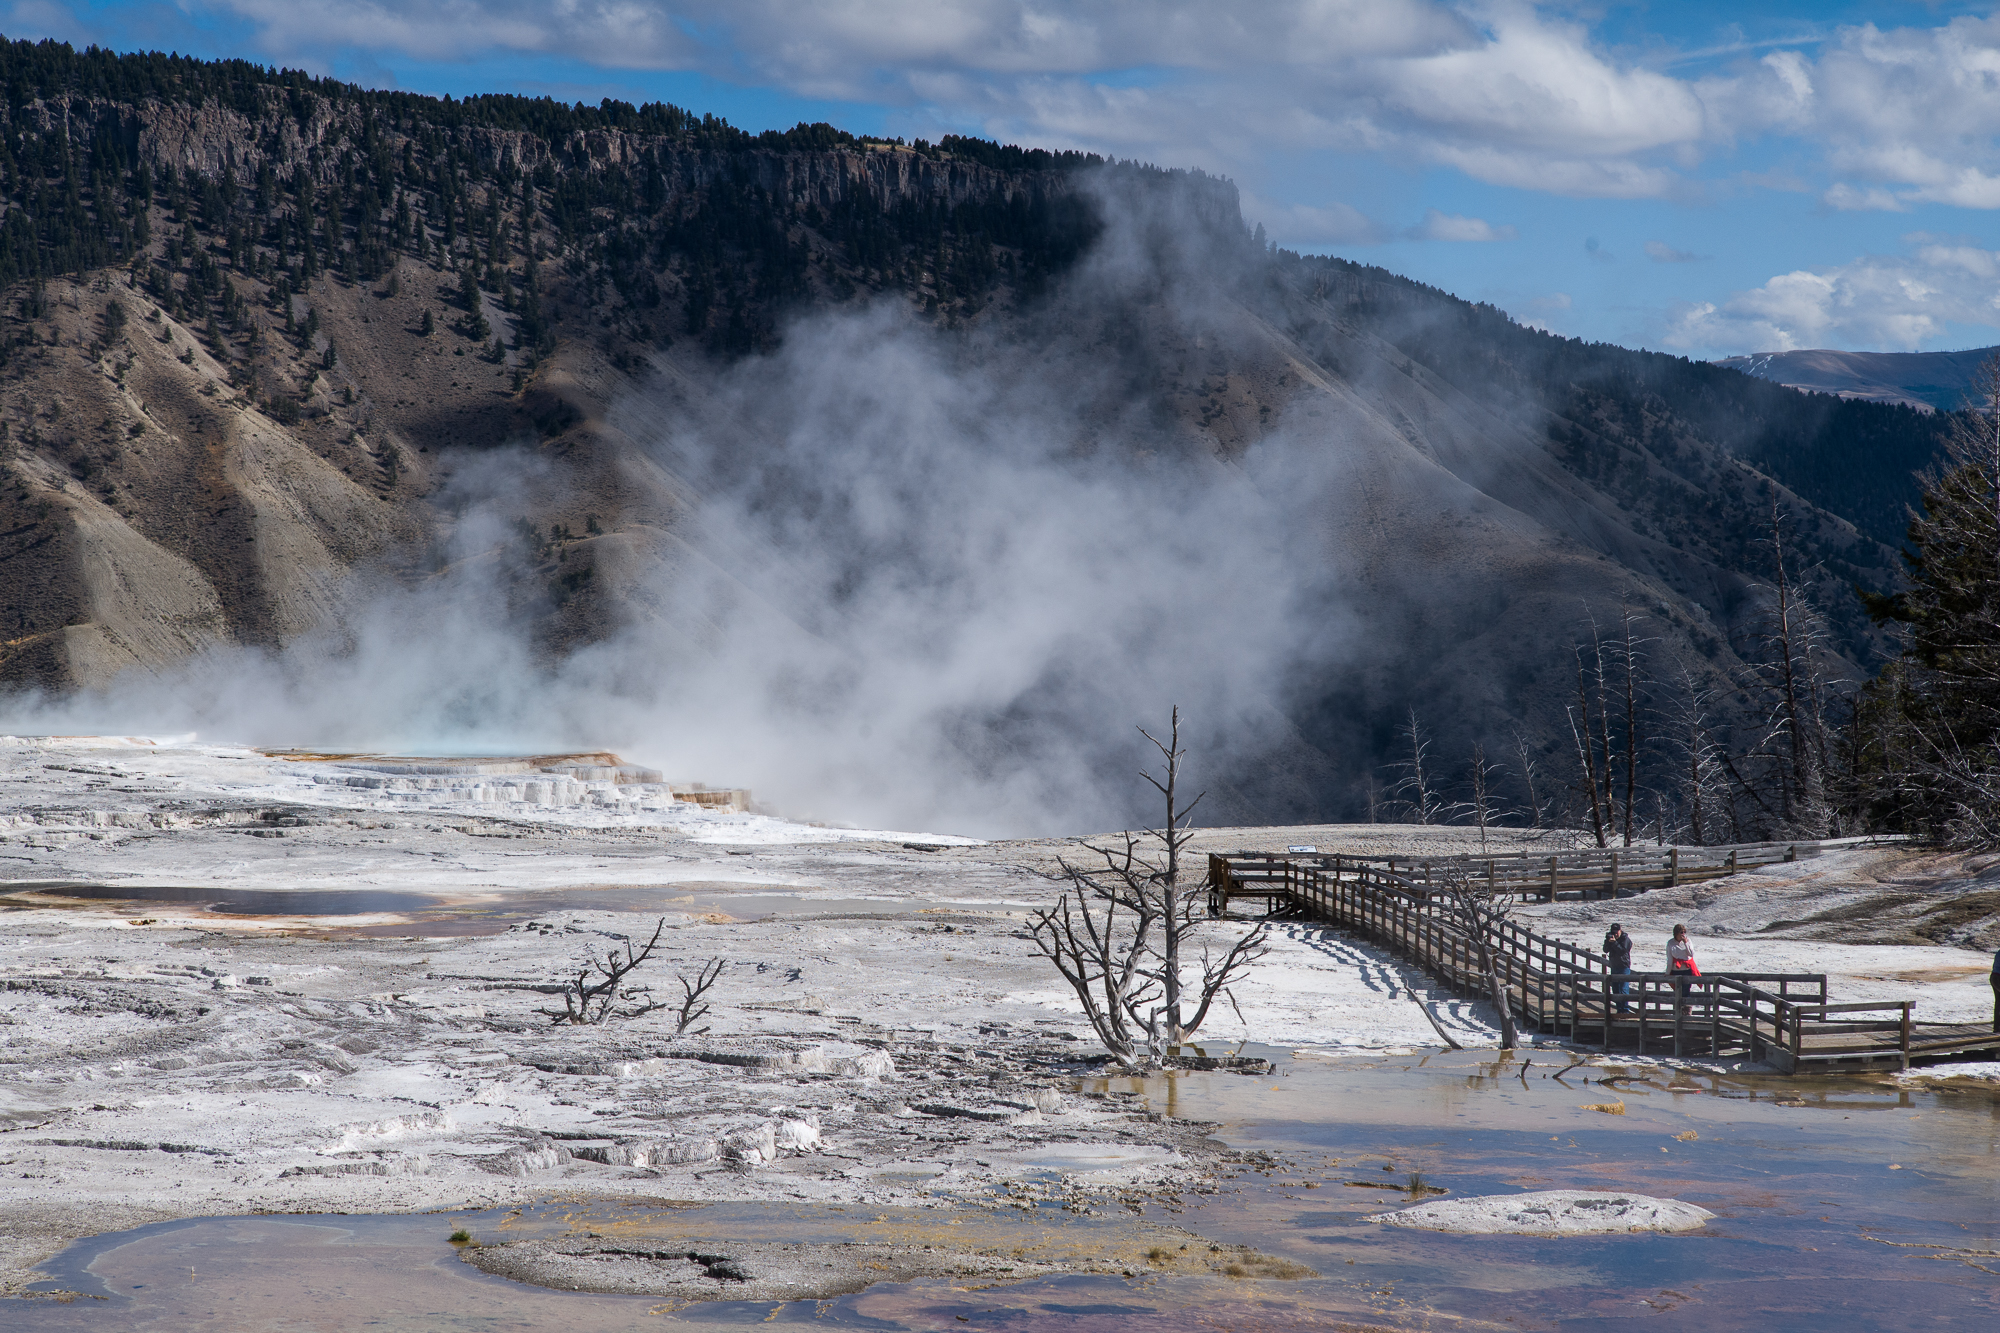 Top of Mammoth Hot Spring